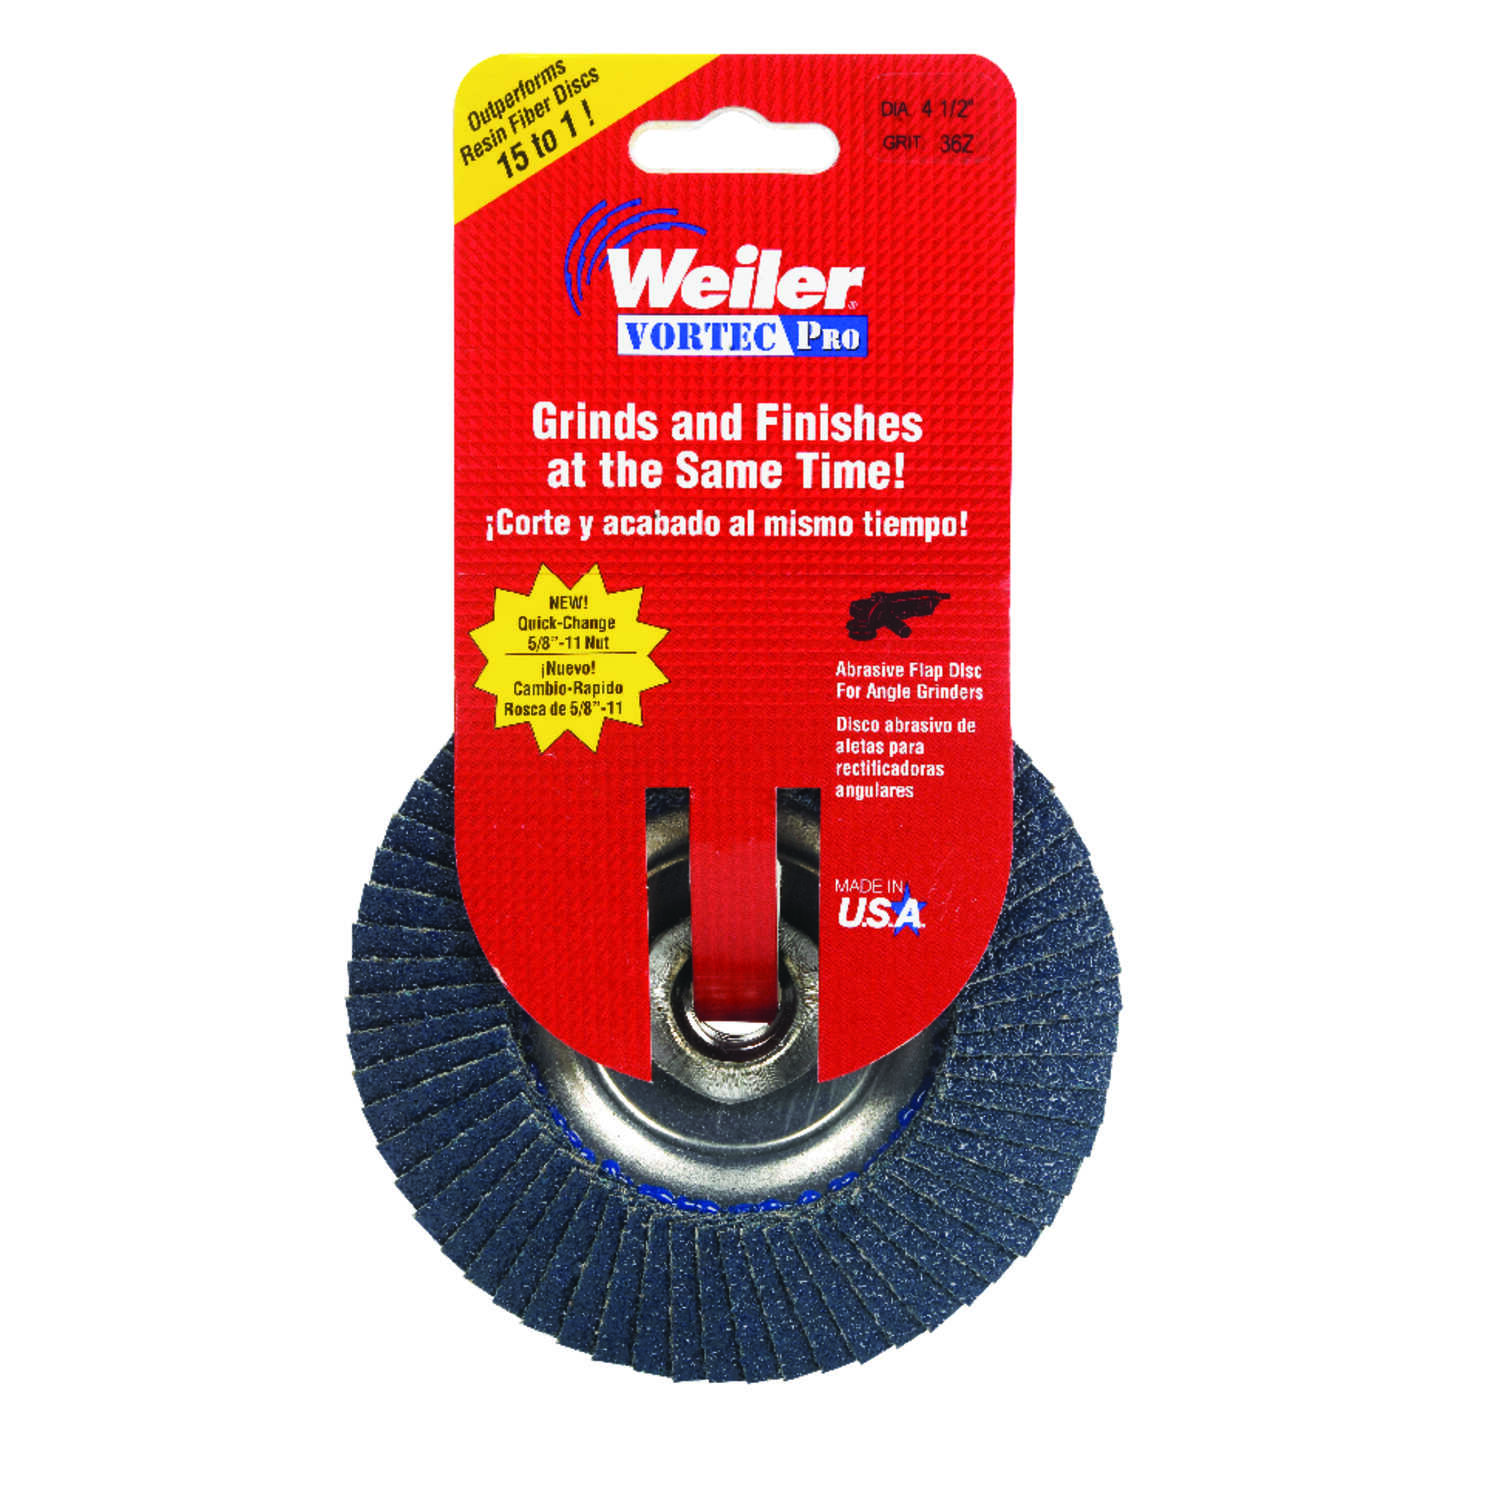 Weiler  Vortec Pro  4-1/2 in. Dia. x 5/8 in.  Zirconia  Type 29  Flap Disc  36 Grit 13000 rpm 1 pc.